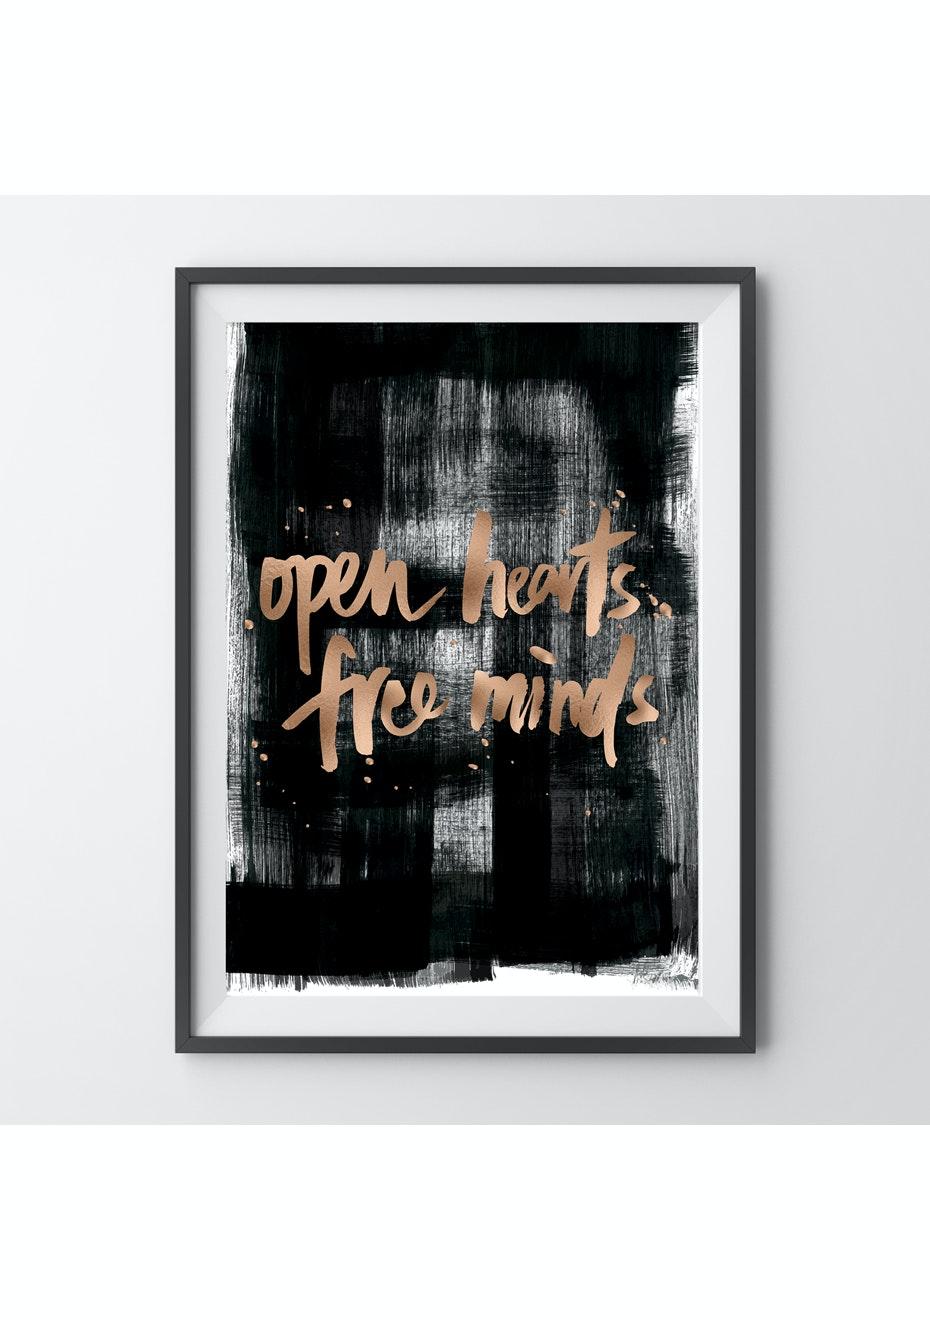 Simply Creative - Free Minds - A4 Copper Foil Print